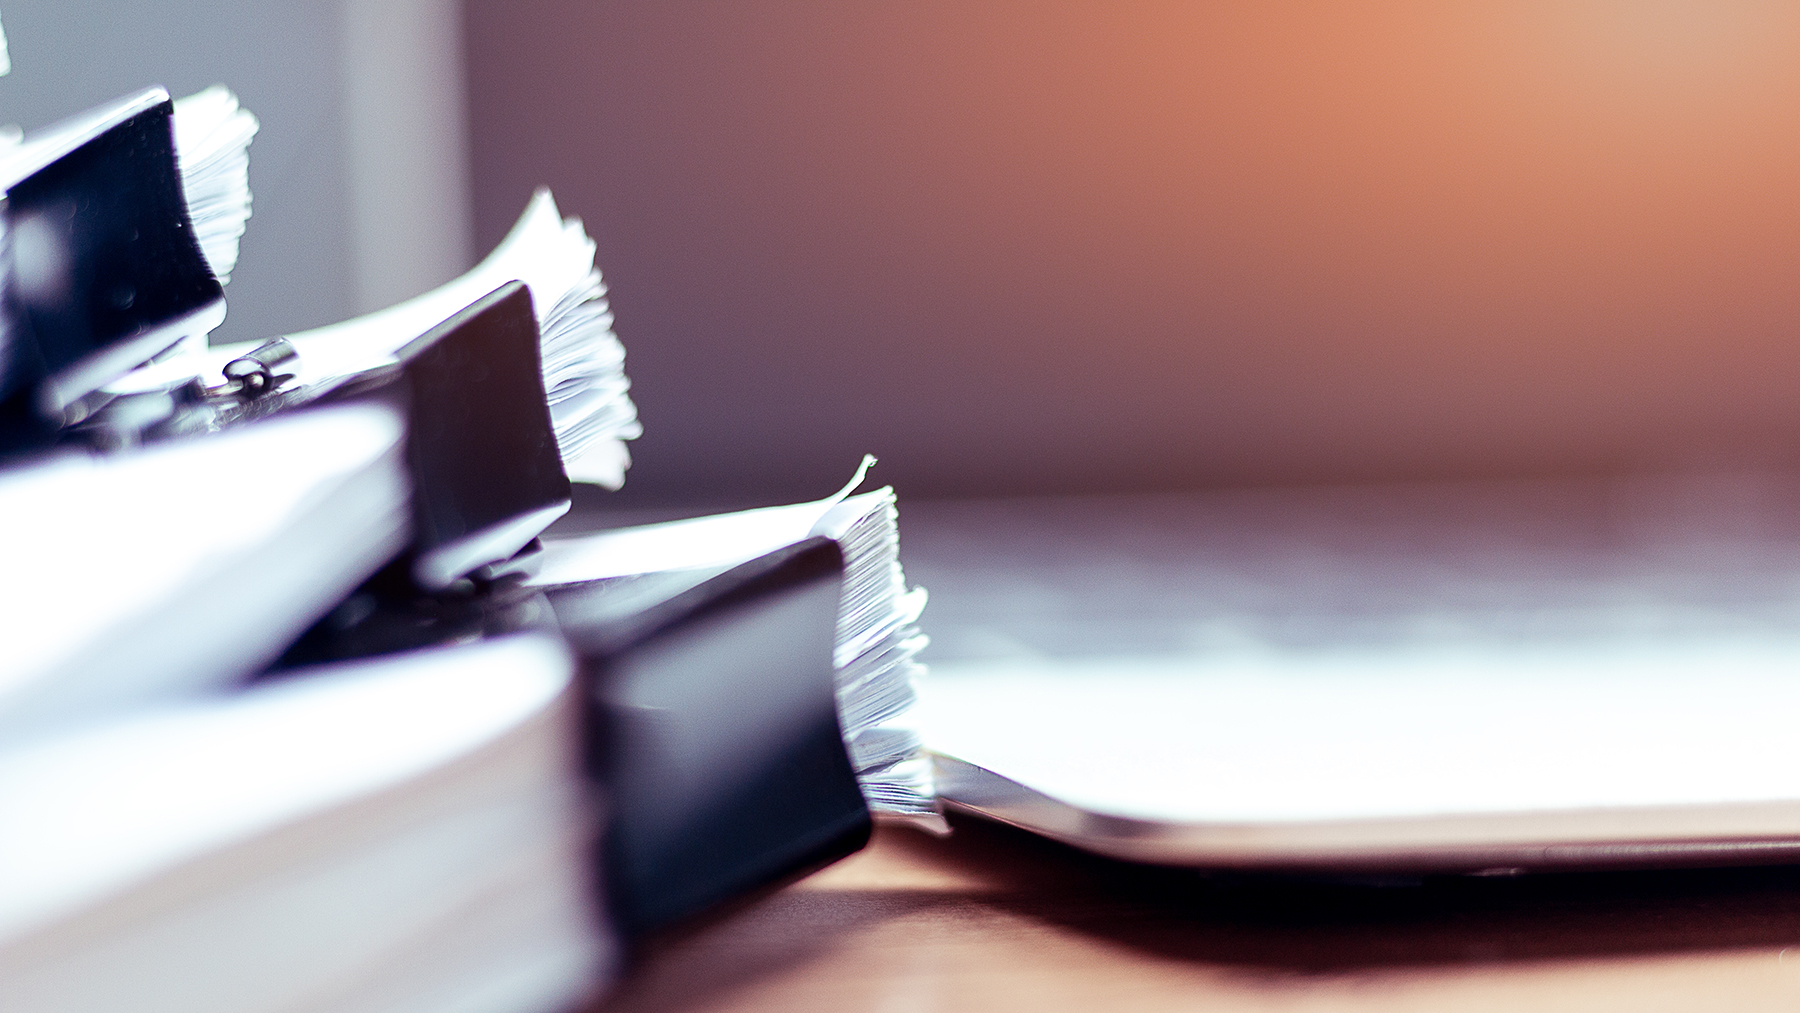 Stack of papers in front of computer